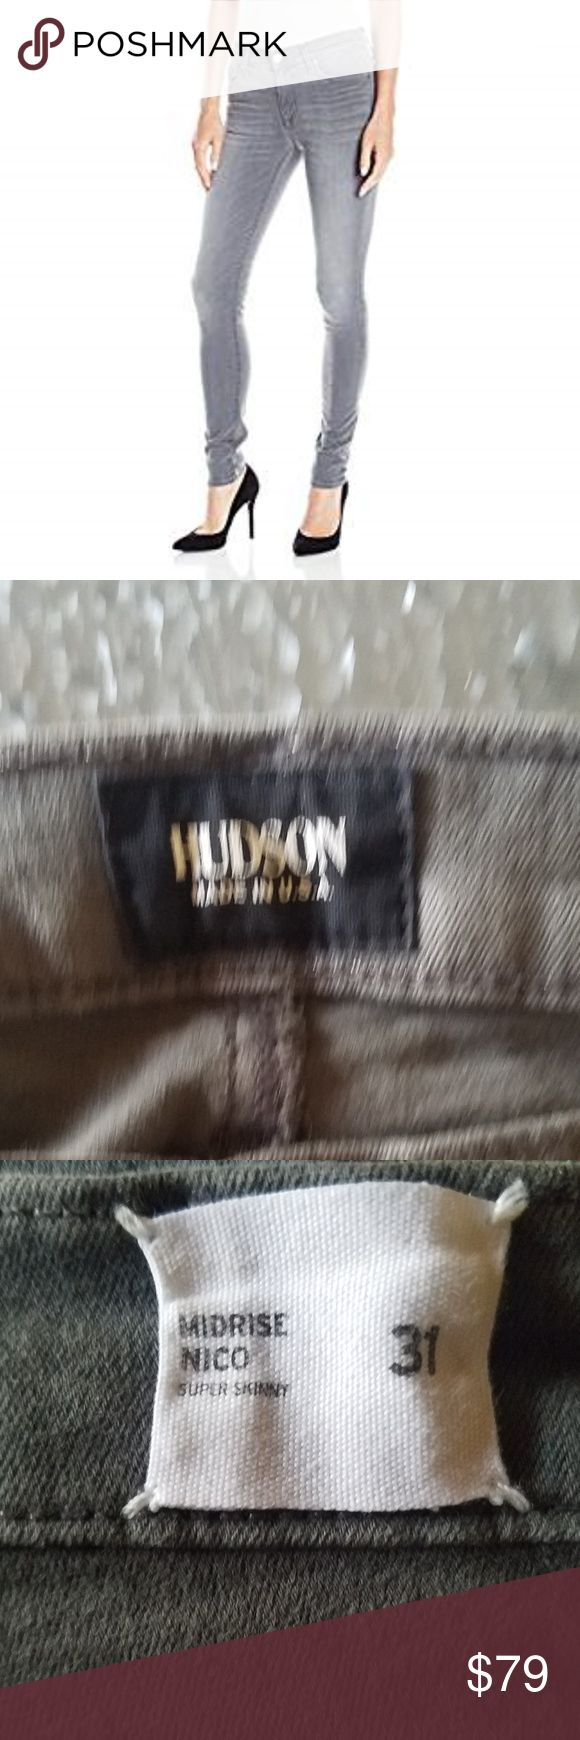 Hudson Midrise Nico super skinny grey jeans sz 31 What a find!  Still selling in blue washes at full price of $185-208 online!   Soft, shaping denim fabric with full stretch recovery.  Cotton/poly/lycra blend.  Hudson fabric gives unbelievable lift and stretch recovery, along with a luxurious soft hand feel in a vintage wash  Like new, worn once and washed Hudson Jeans Jeans Skinny